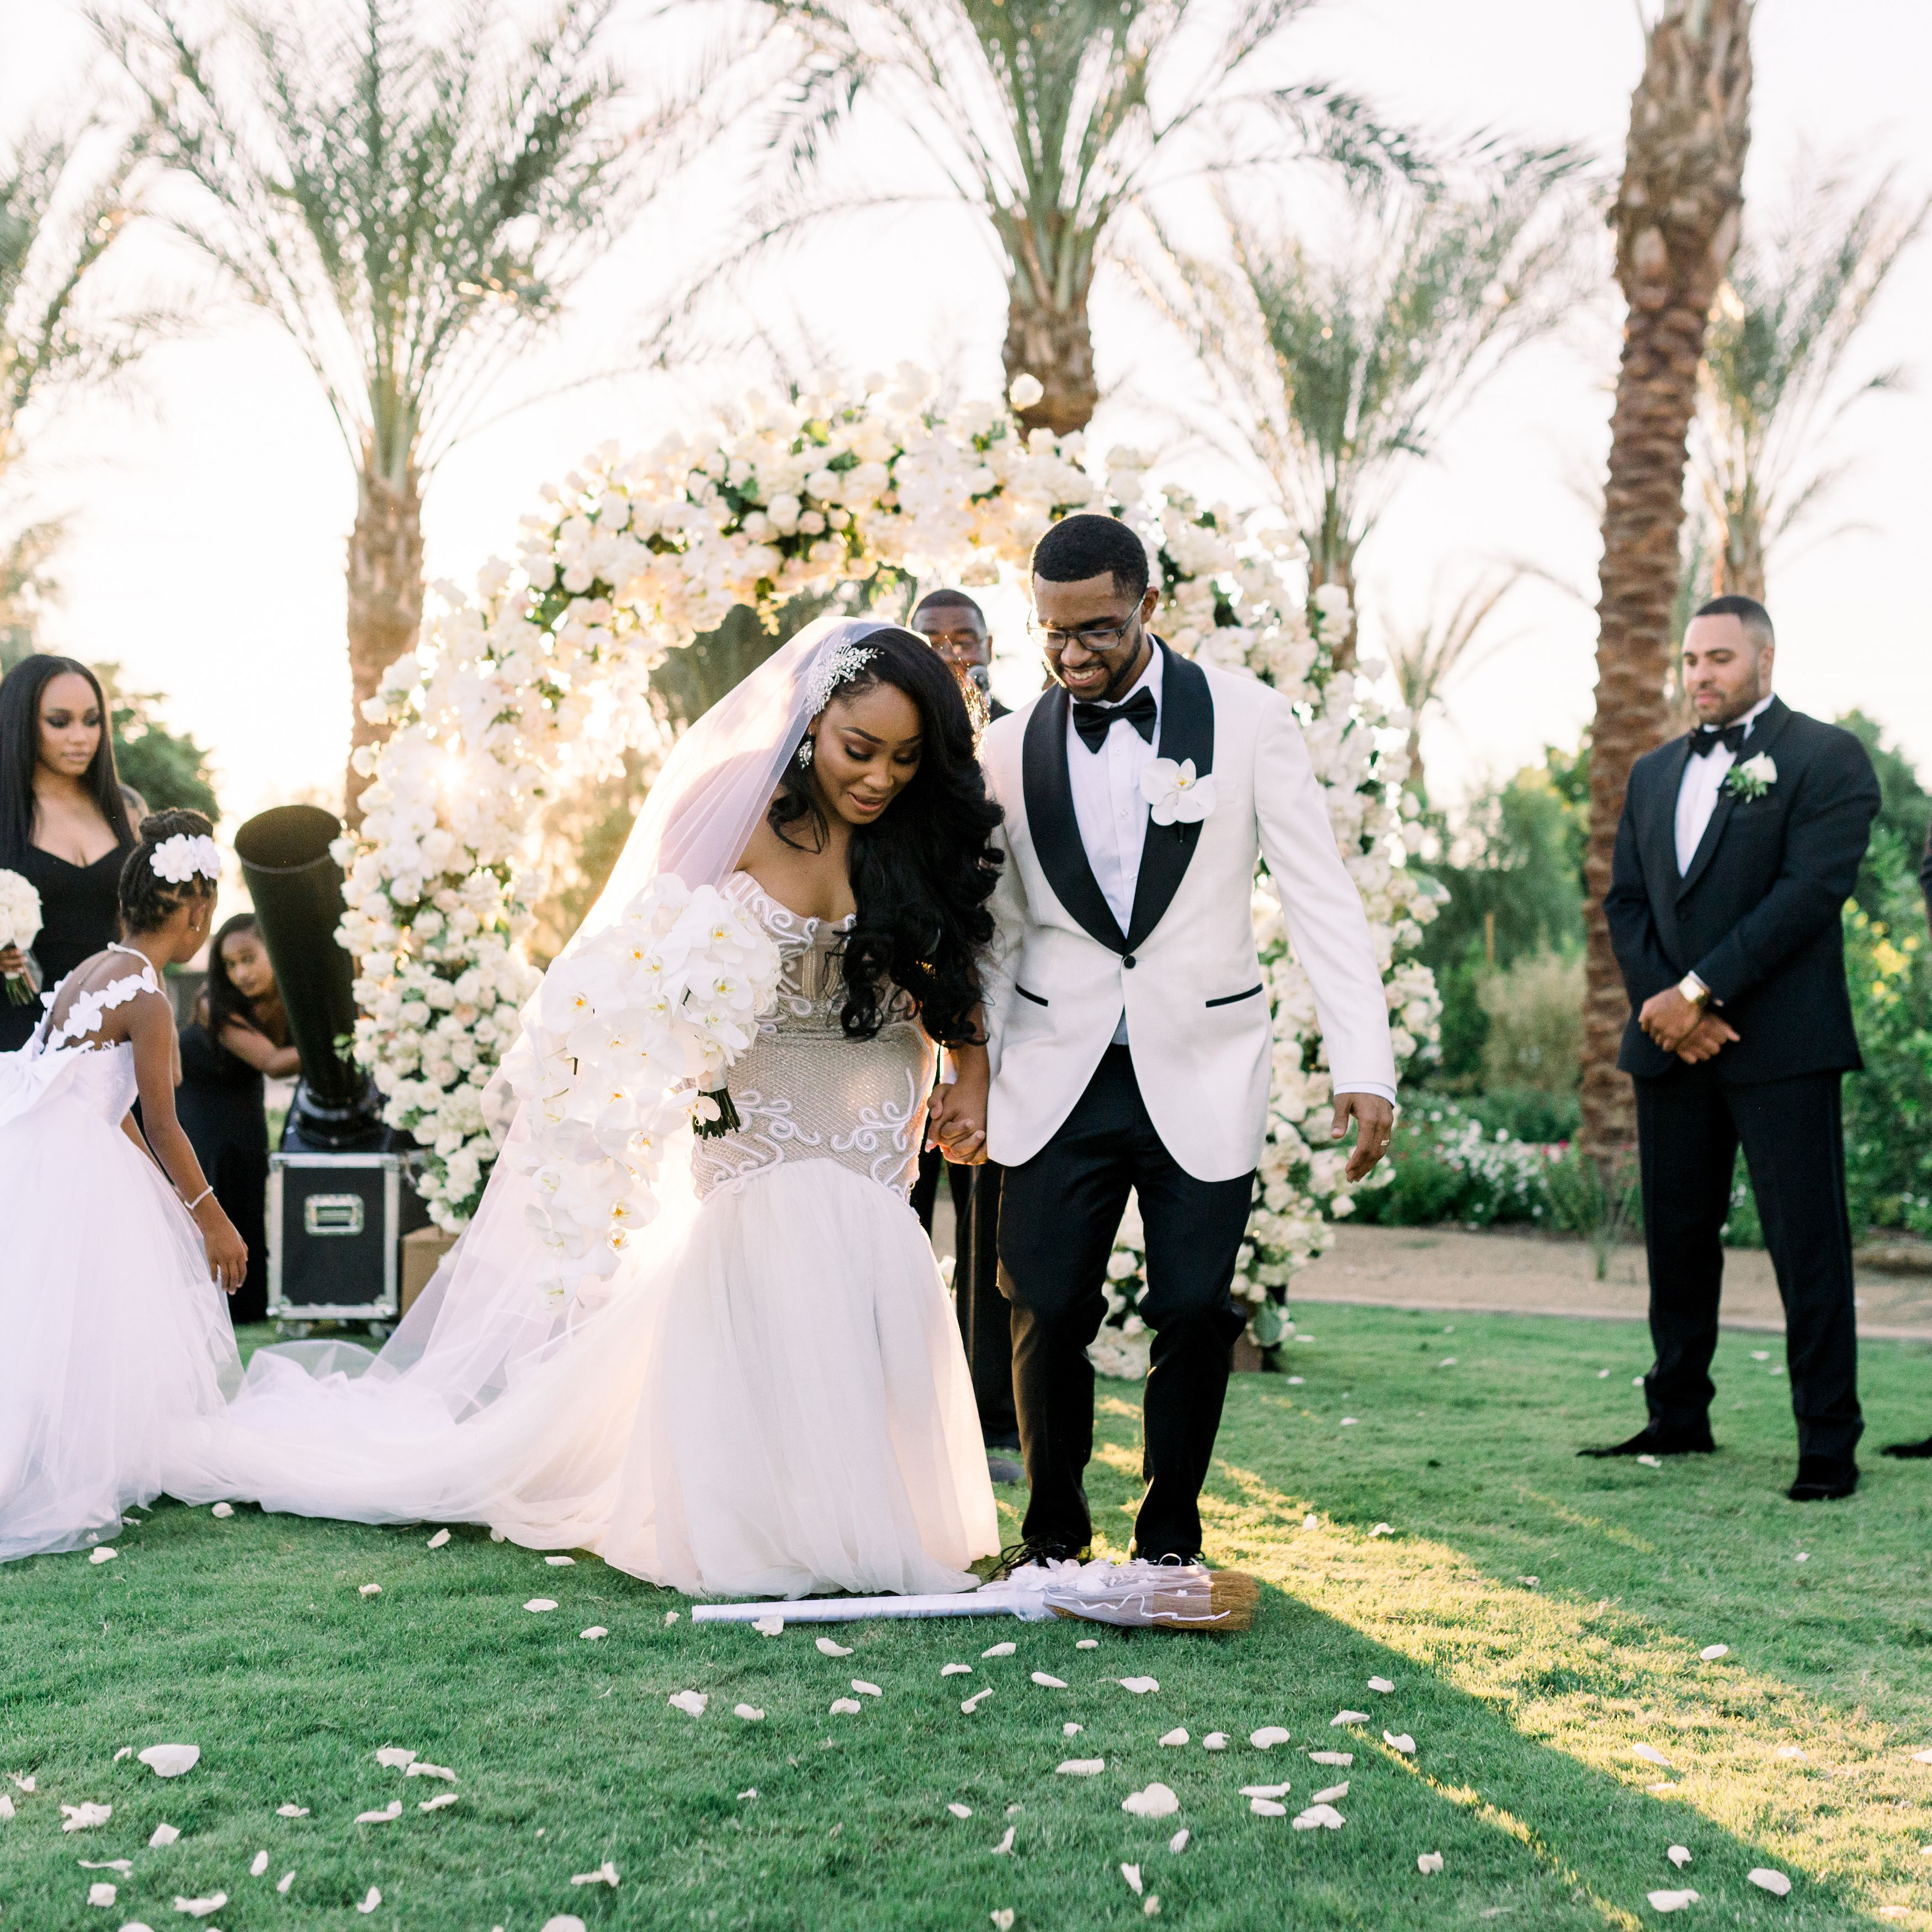 Jumping The Broom Everything You Need To Know About The Tradition